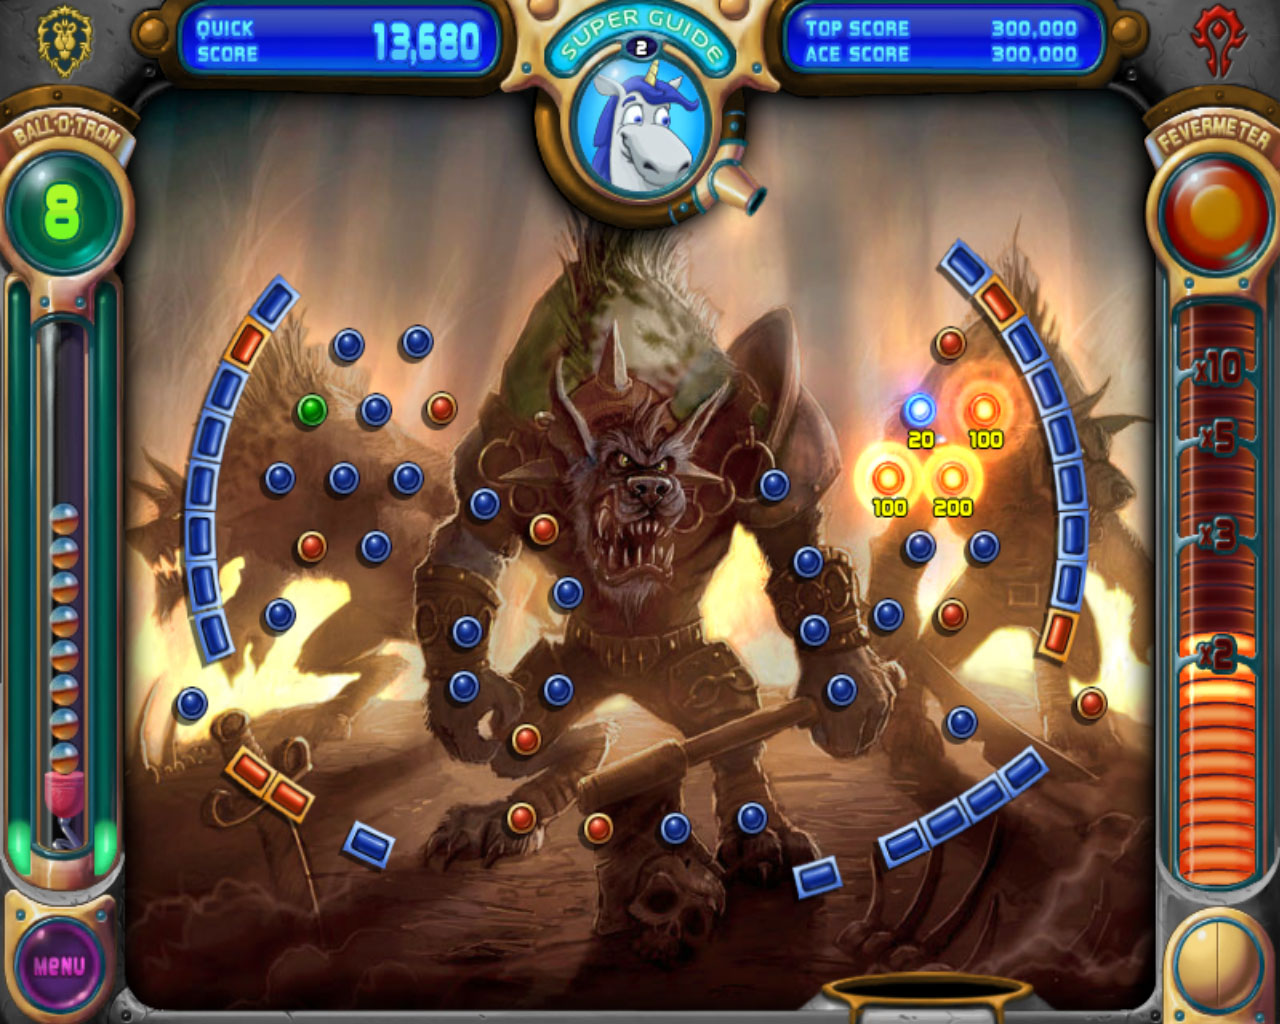 Games Like World of Warcraft (WoW) Both Free and Paid